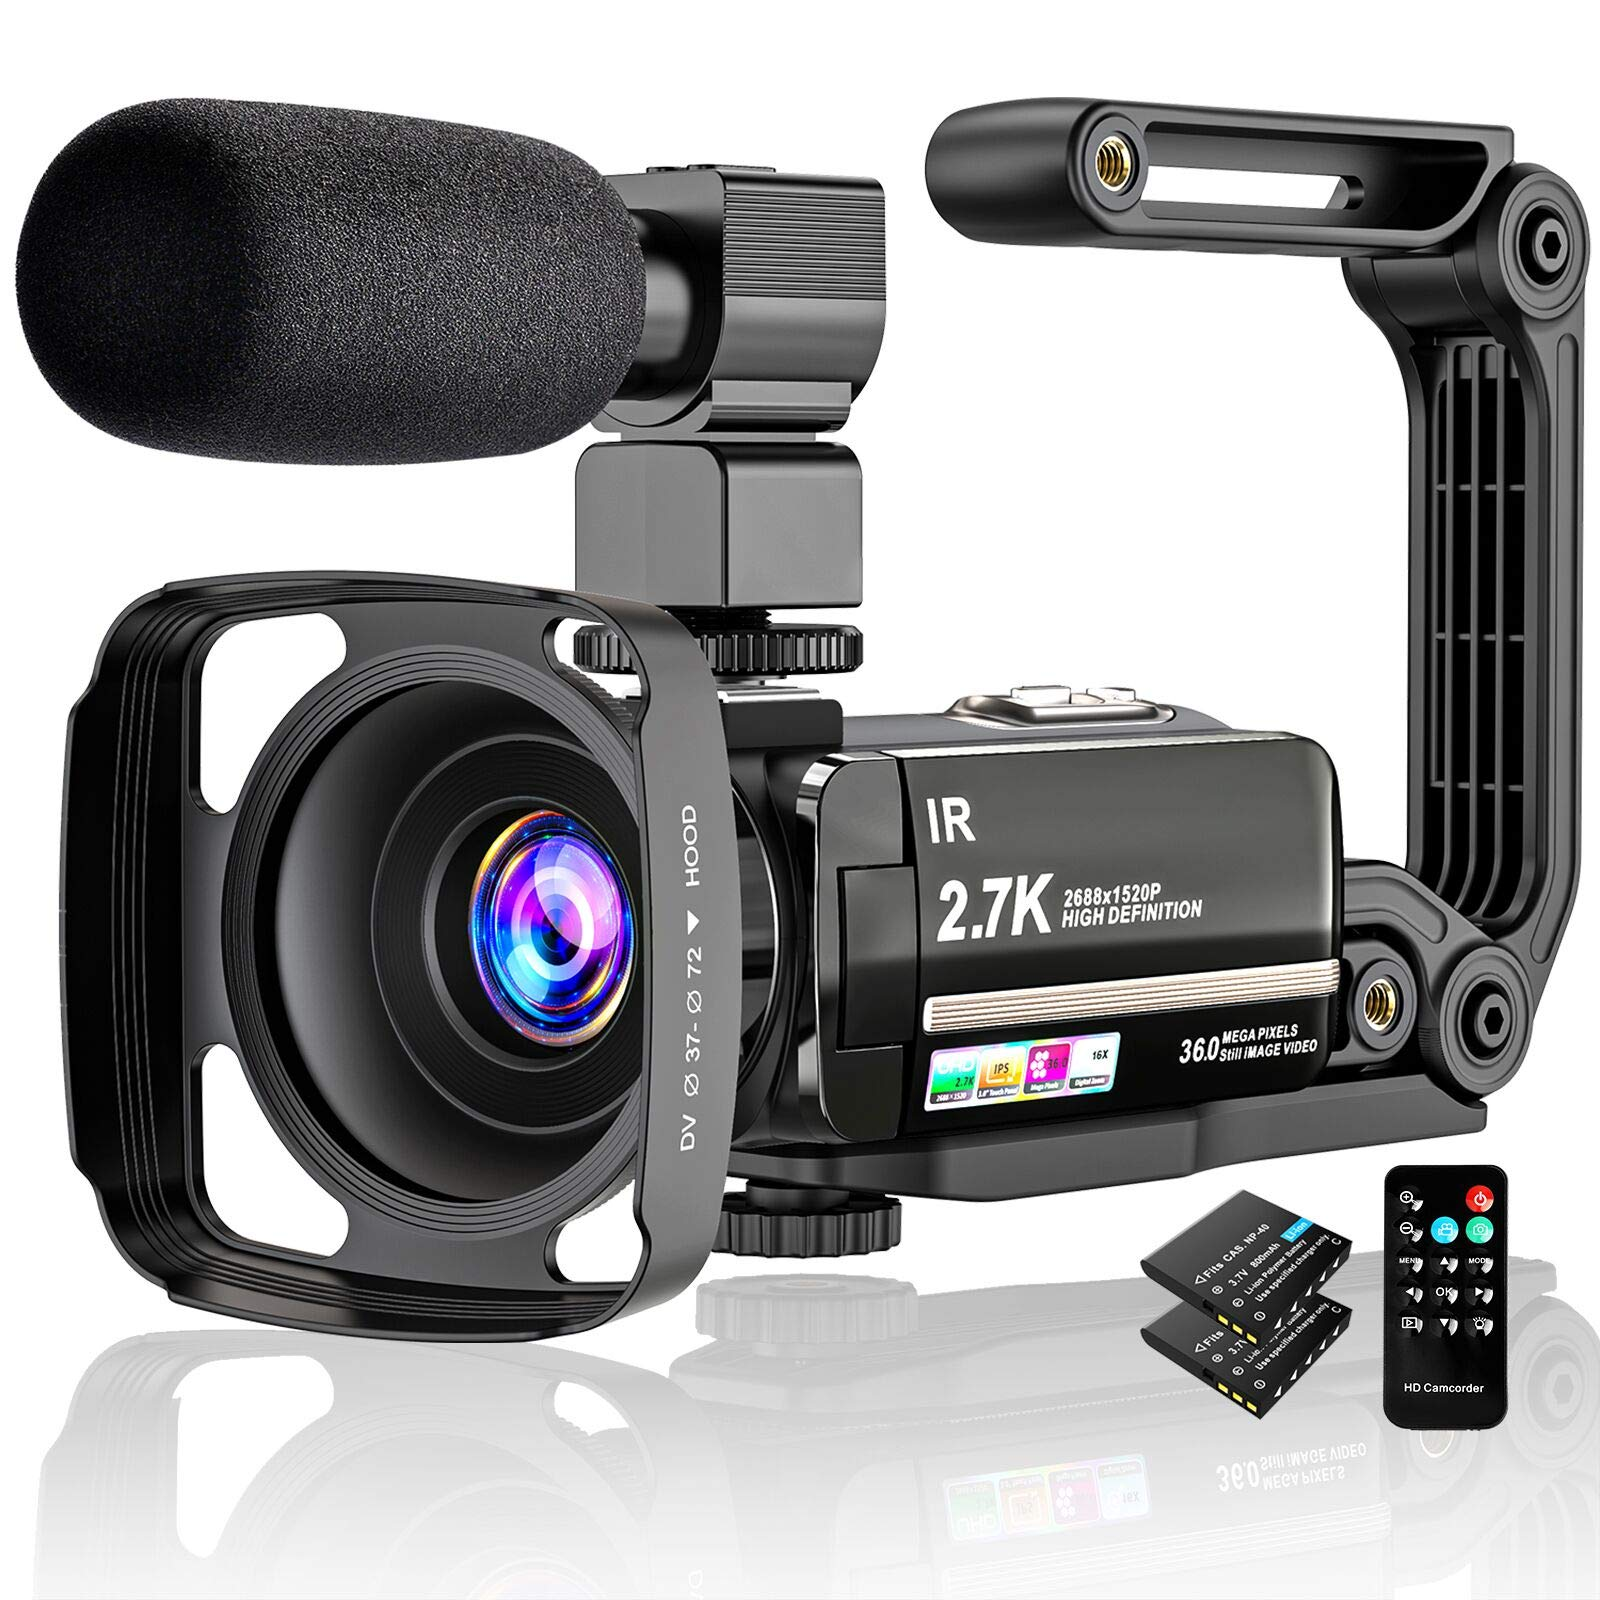 """Video Camera 2.7K Camcorder UHD 36MP Vlogging Camera for Youtube IR Night Vision 3.0"""" LCD Touch Screen 16X Digital Zoom Camera Recorder with Microphone Handheld Stabilizer Remote Control,2 Batteries"""